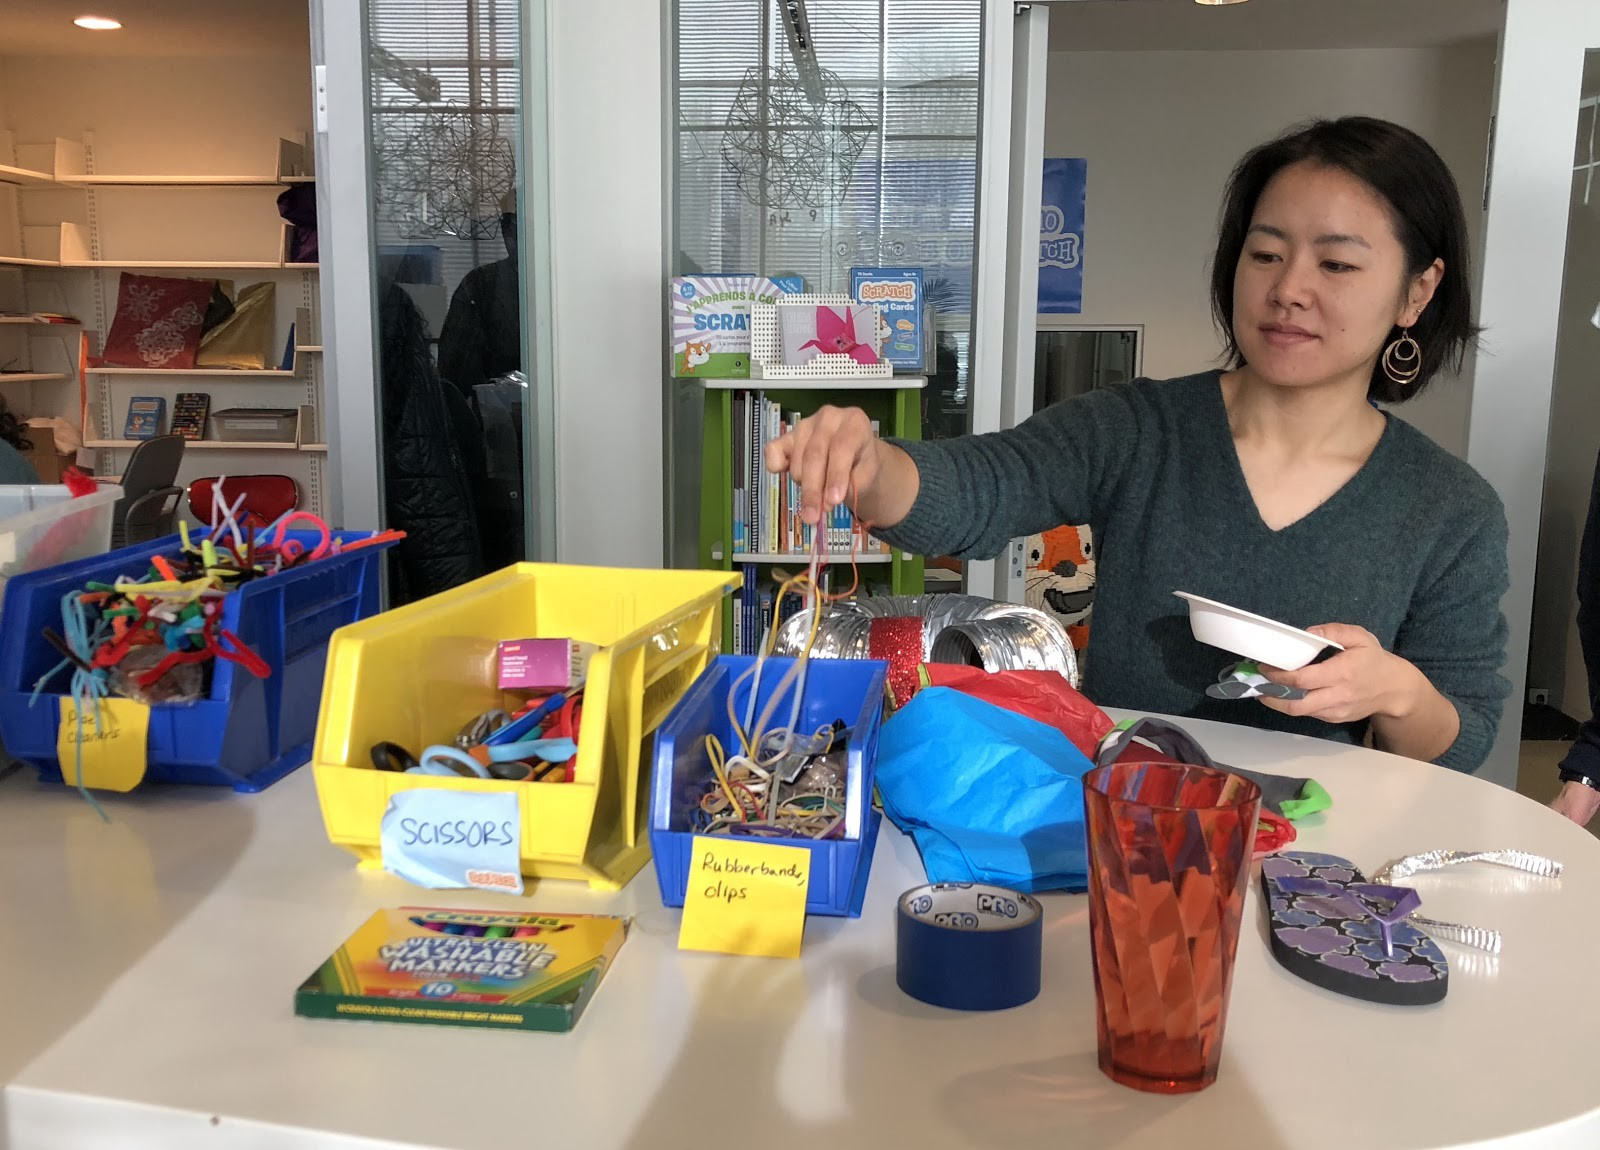 Basic workshop supplies: pipe cleaners, markers, scissors, rubber bands, and more!